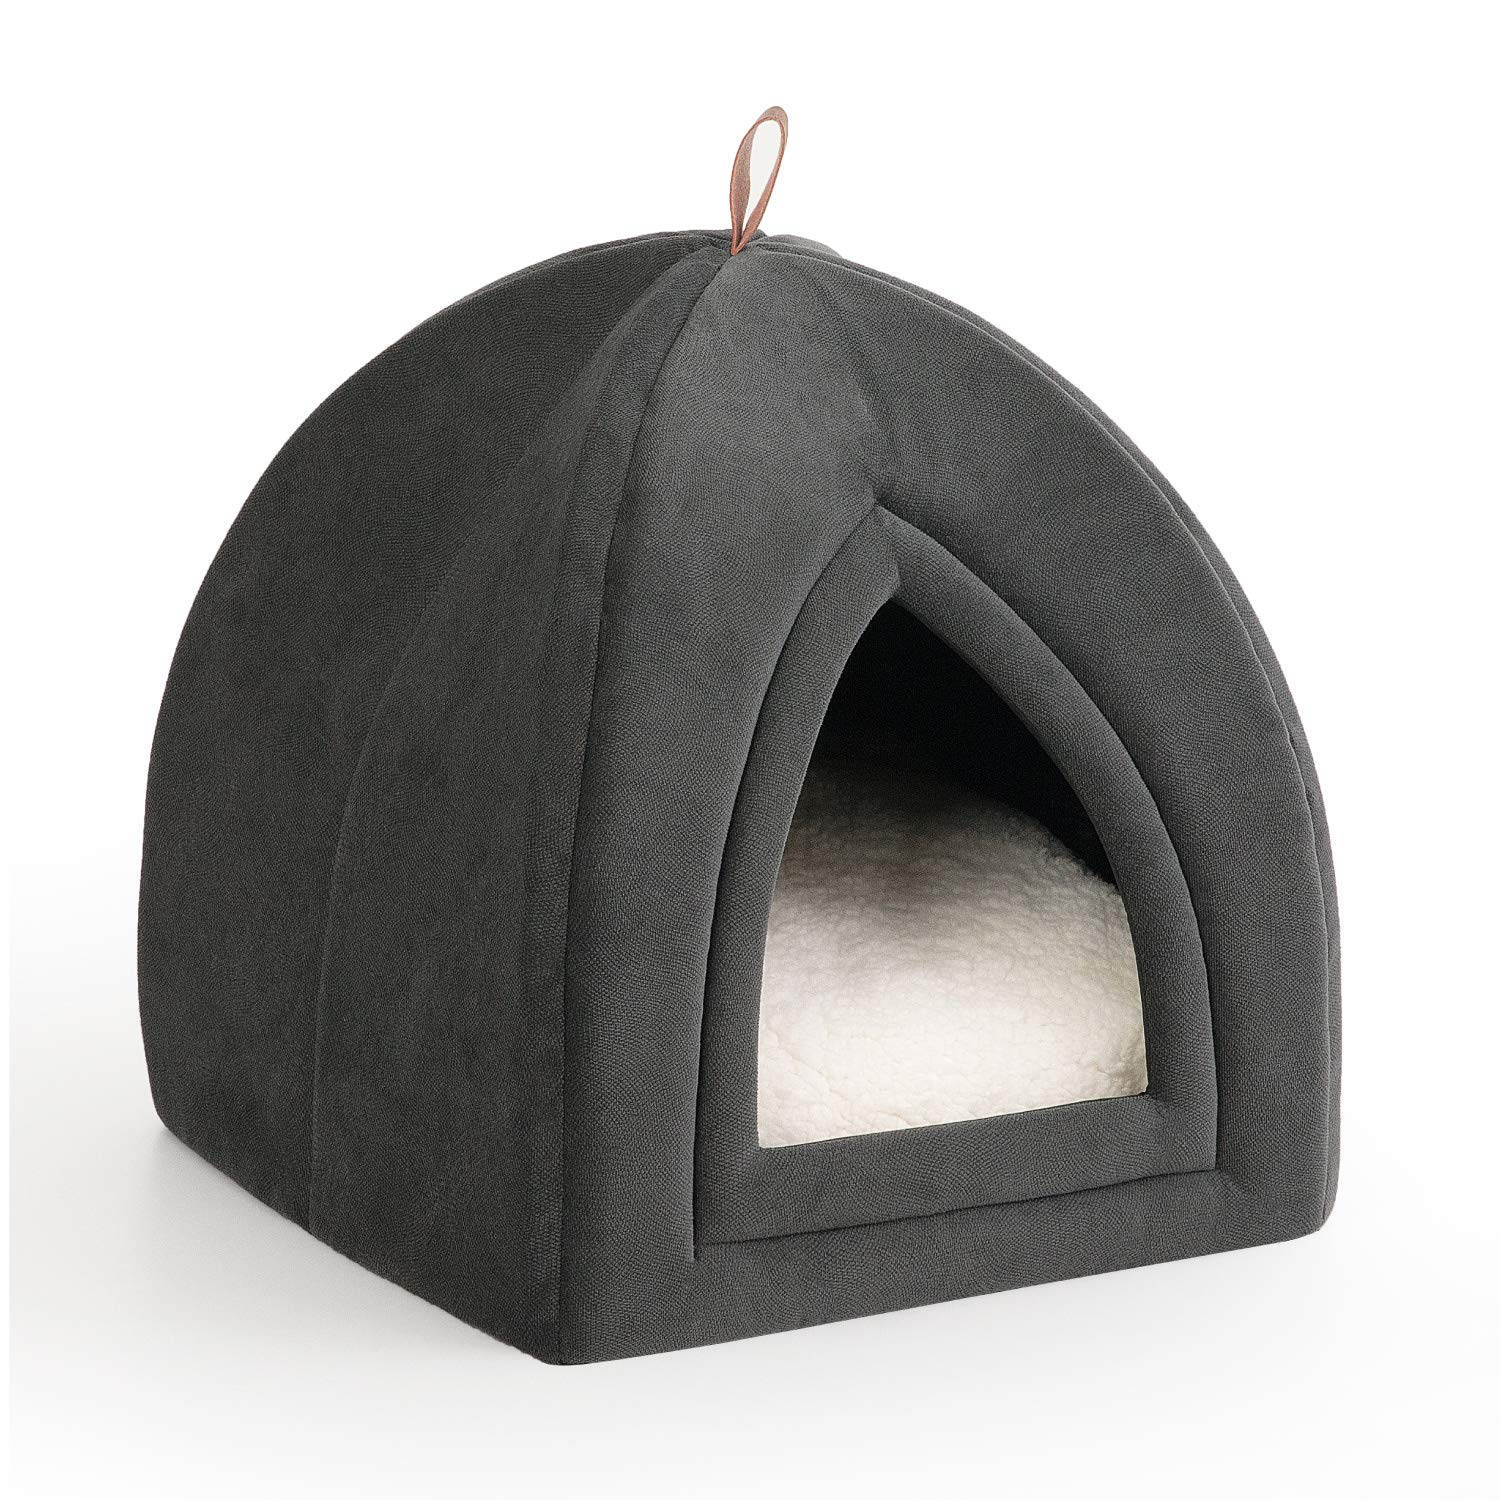 Petsure Pet Tent Cave Bed for Cats/Small Dogs - 15x15x15 inches 2-in-1 Cat Tent/Kitten Bed/Cat Hut with Removable Washable Cushioned Pillow - Microfiber Indoor Outdoor Pet Beds, Dark Grey by Petsure